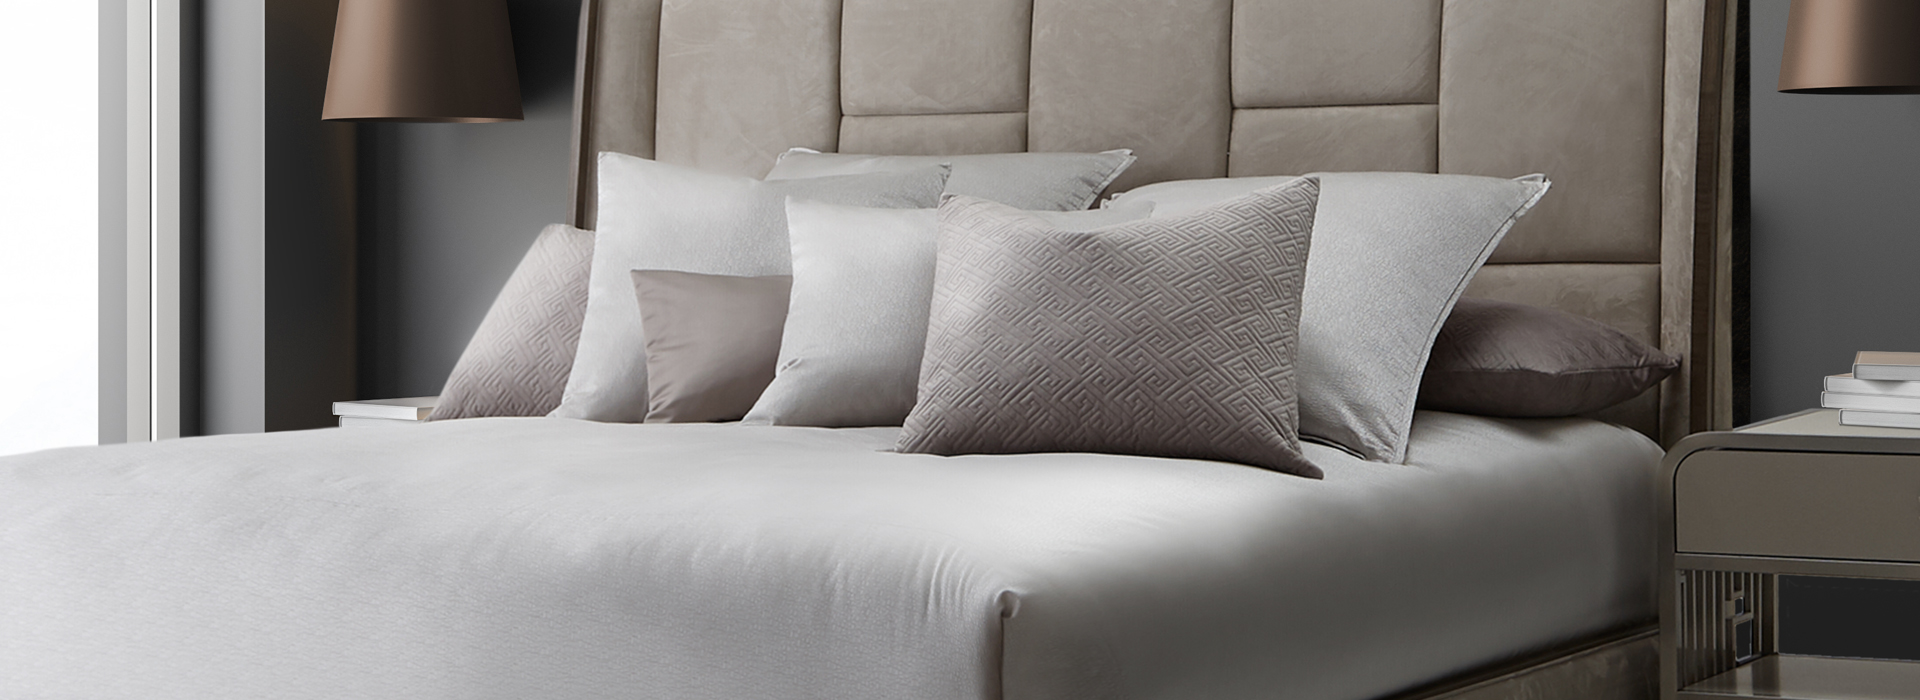 With Dozens Of Luxury Bedding Ensembles, Throws And Decorative Pillows To  Choose From, You Are Sure To Find Something That Fits Your Style.